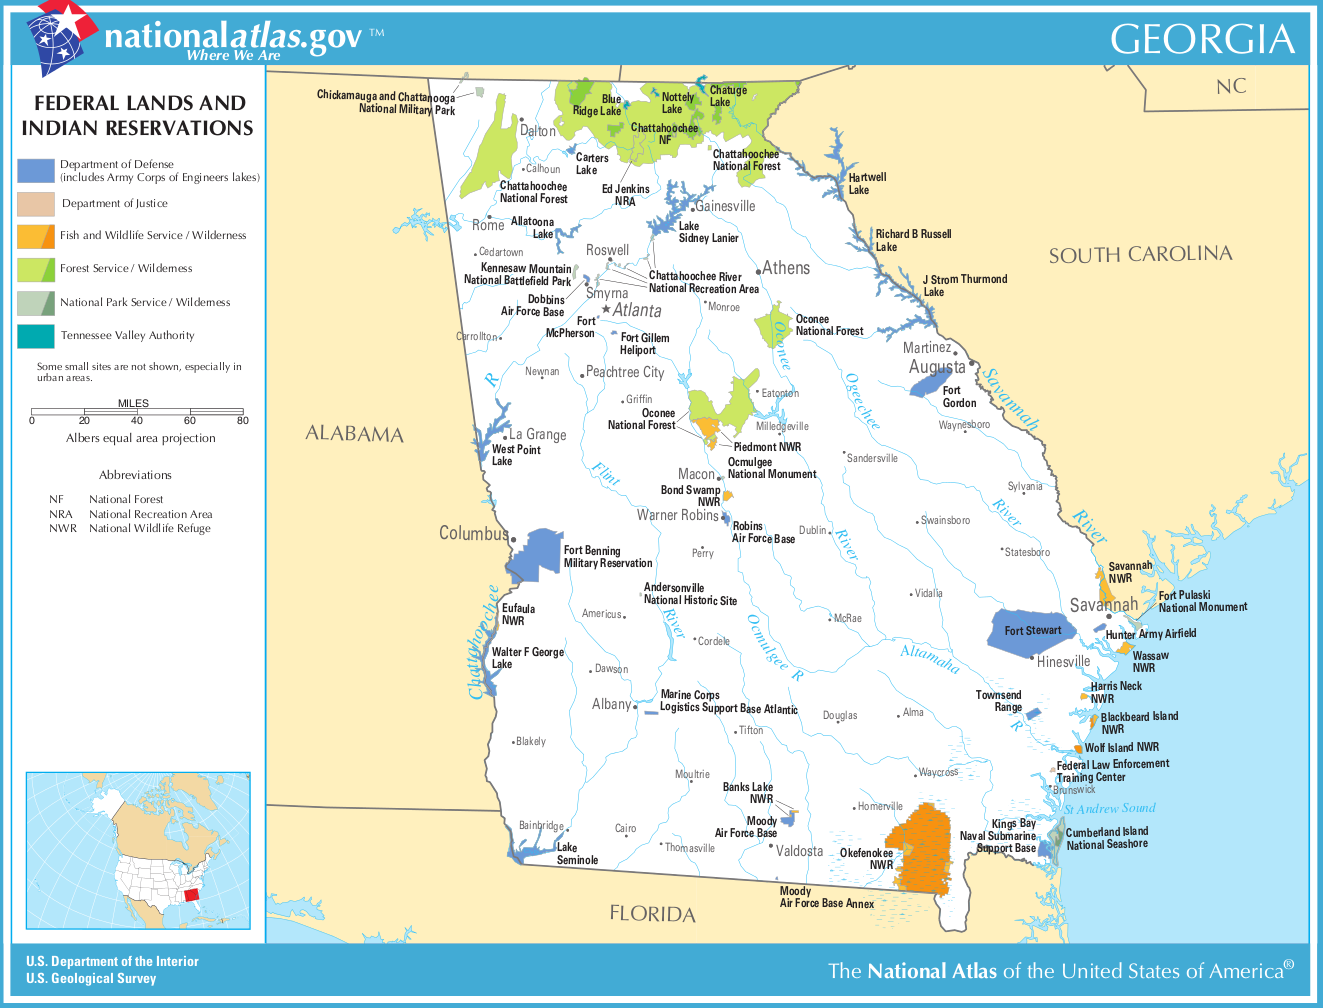 Map Of Georgia Map Federal Lands And Indian Reservations - Georgia map valdosta